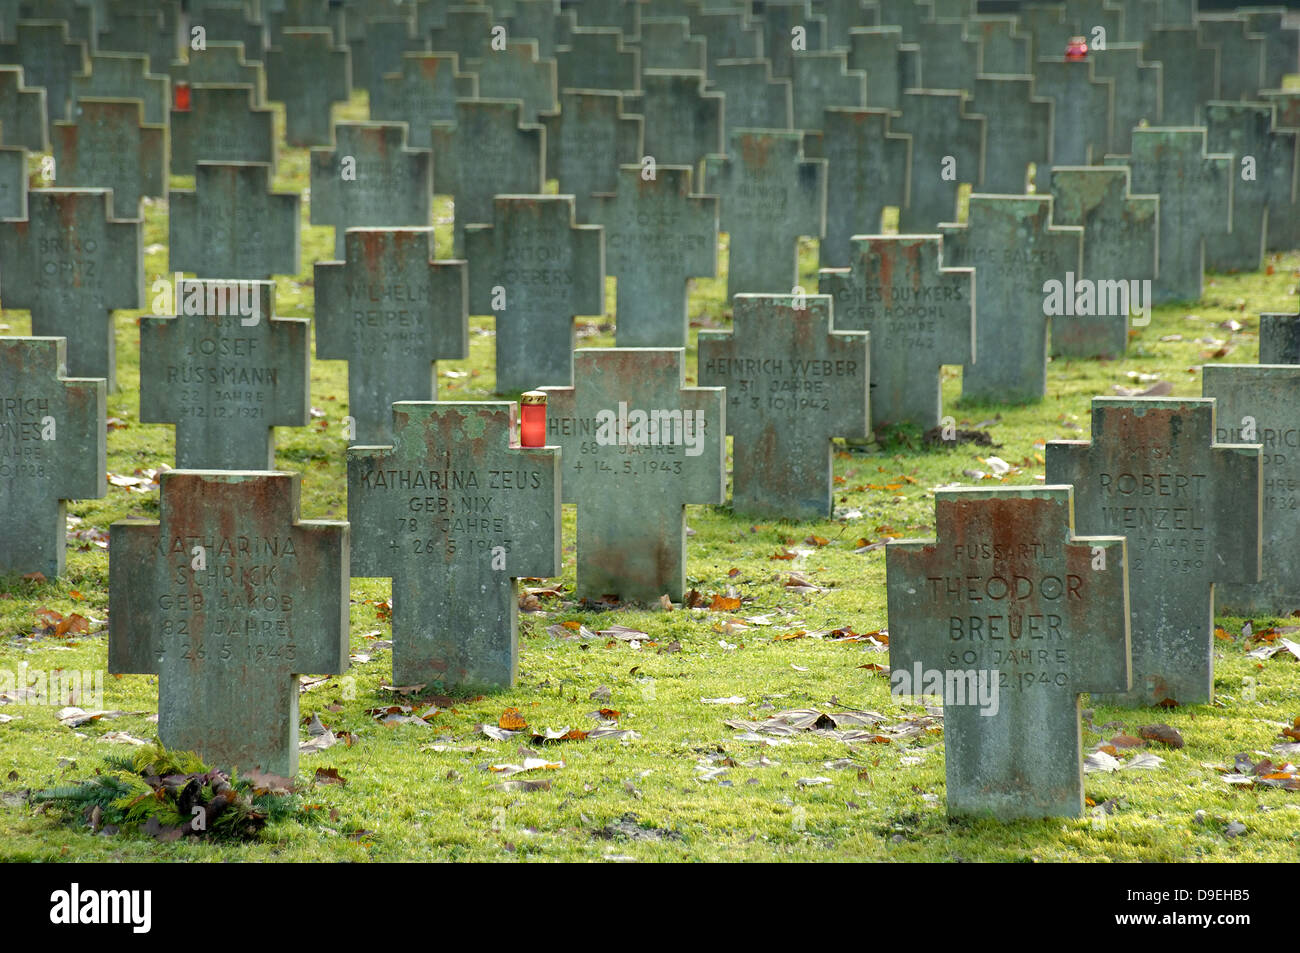 Graves of civil German bomb victims of the Second World War - Stock Image